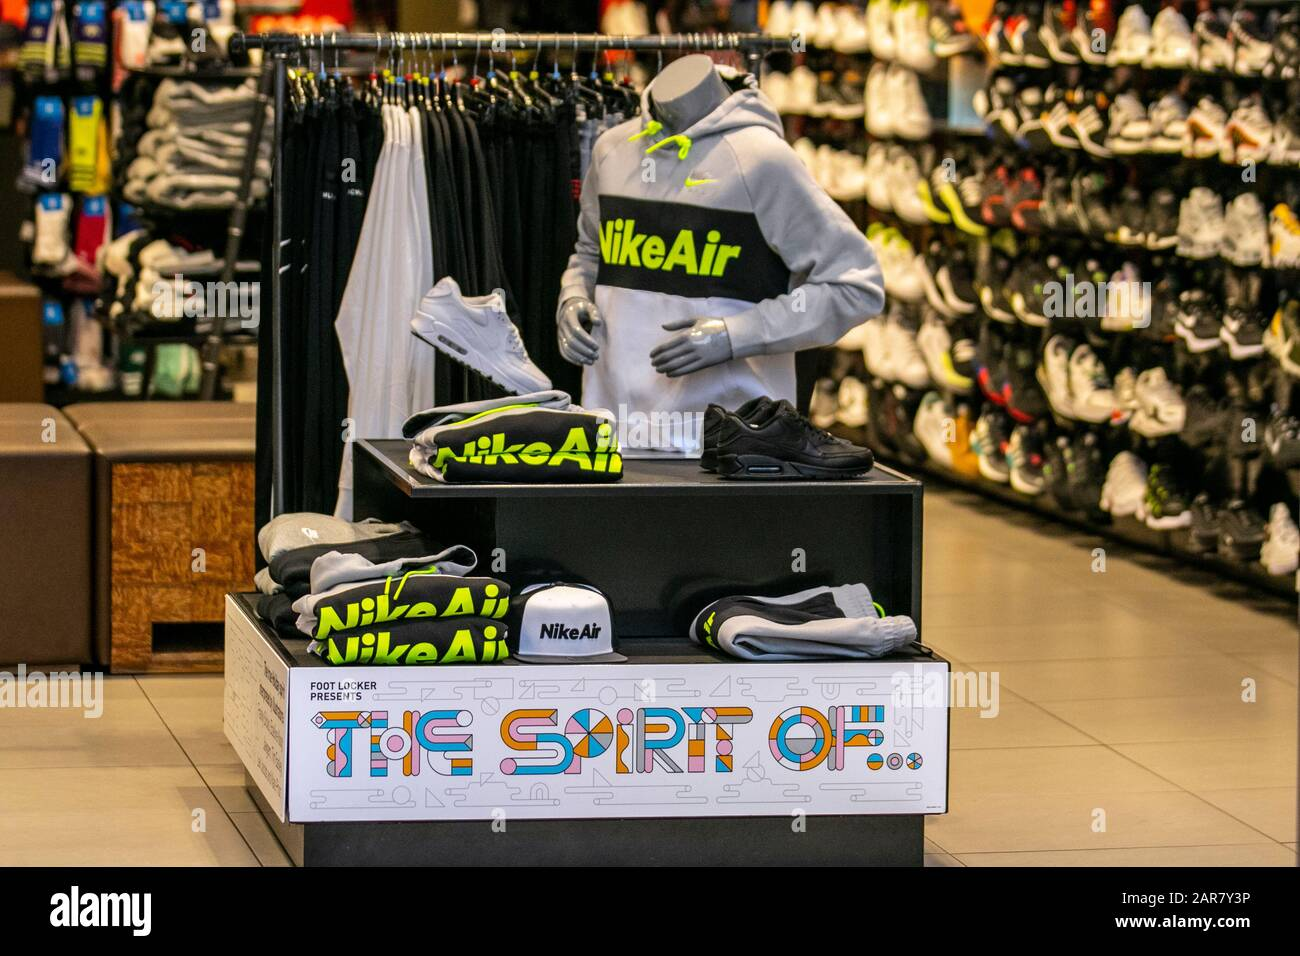 Perjudicial histórico Ejército  Nike Shoes Display High Resolution Stock Photography and Images - Alamy